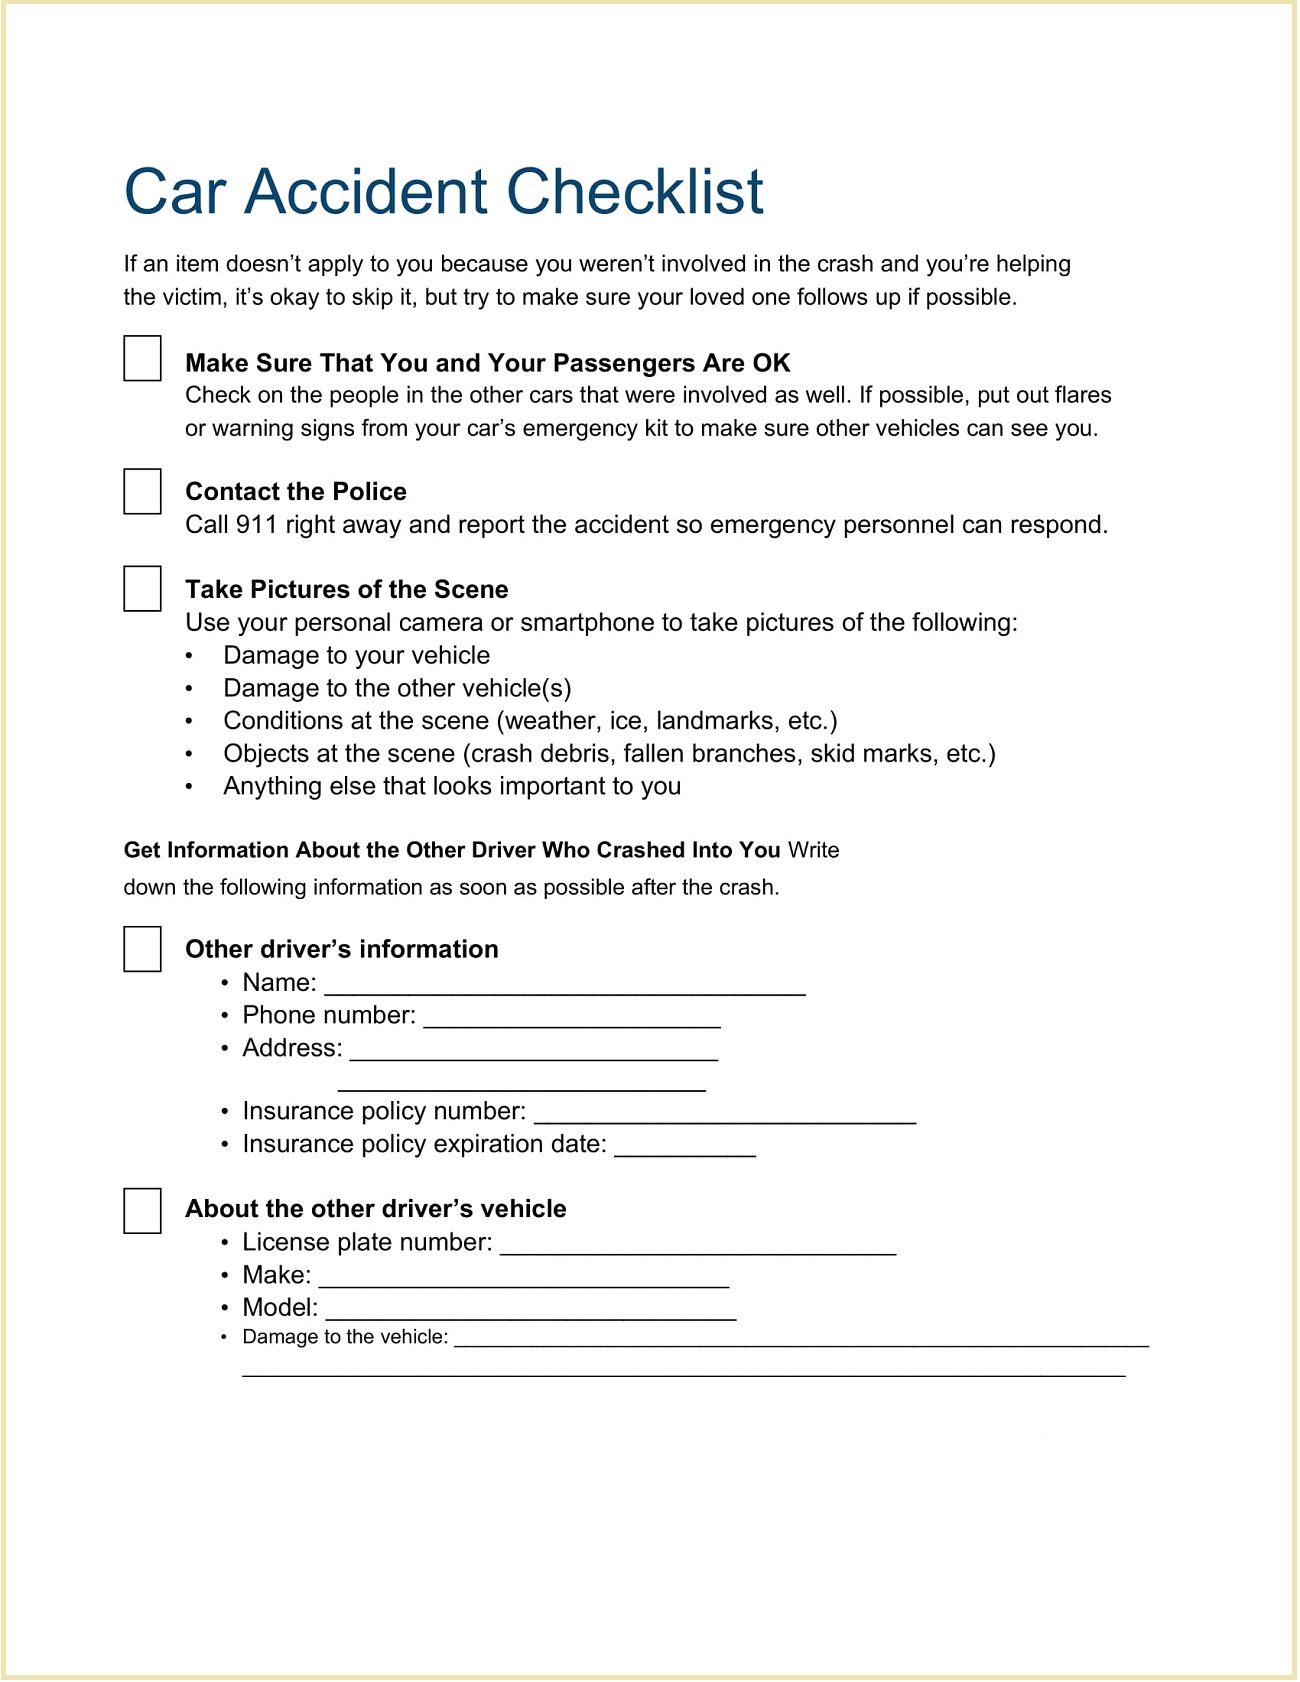 Car Accident Checklist Template Word Doc